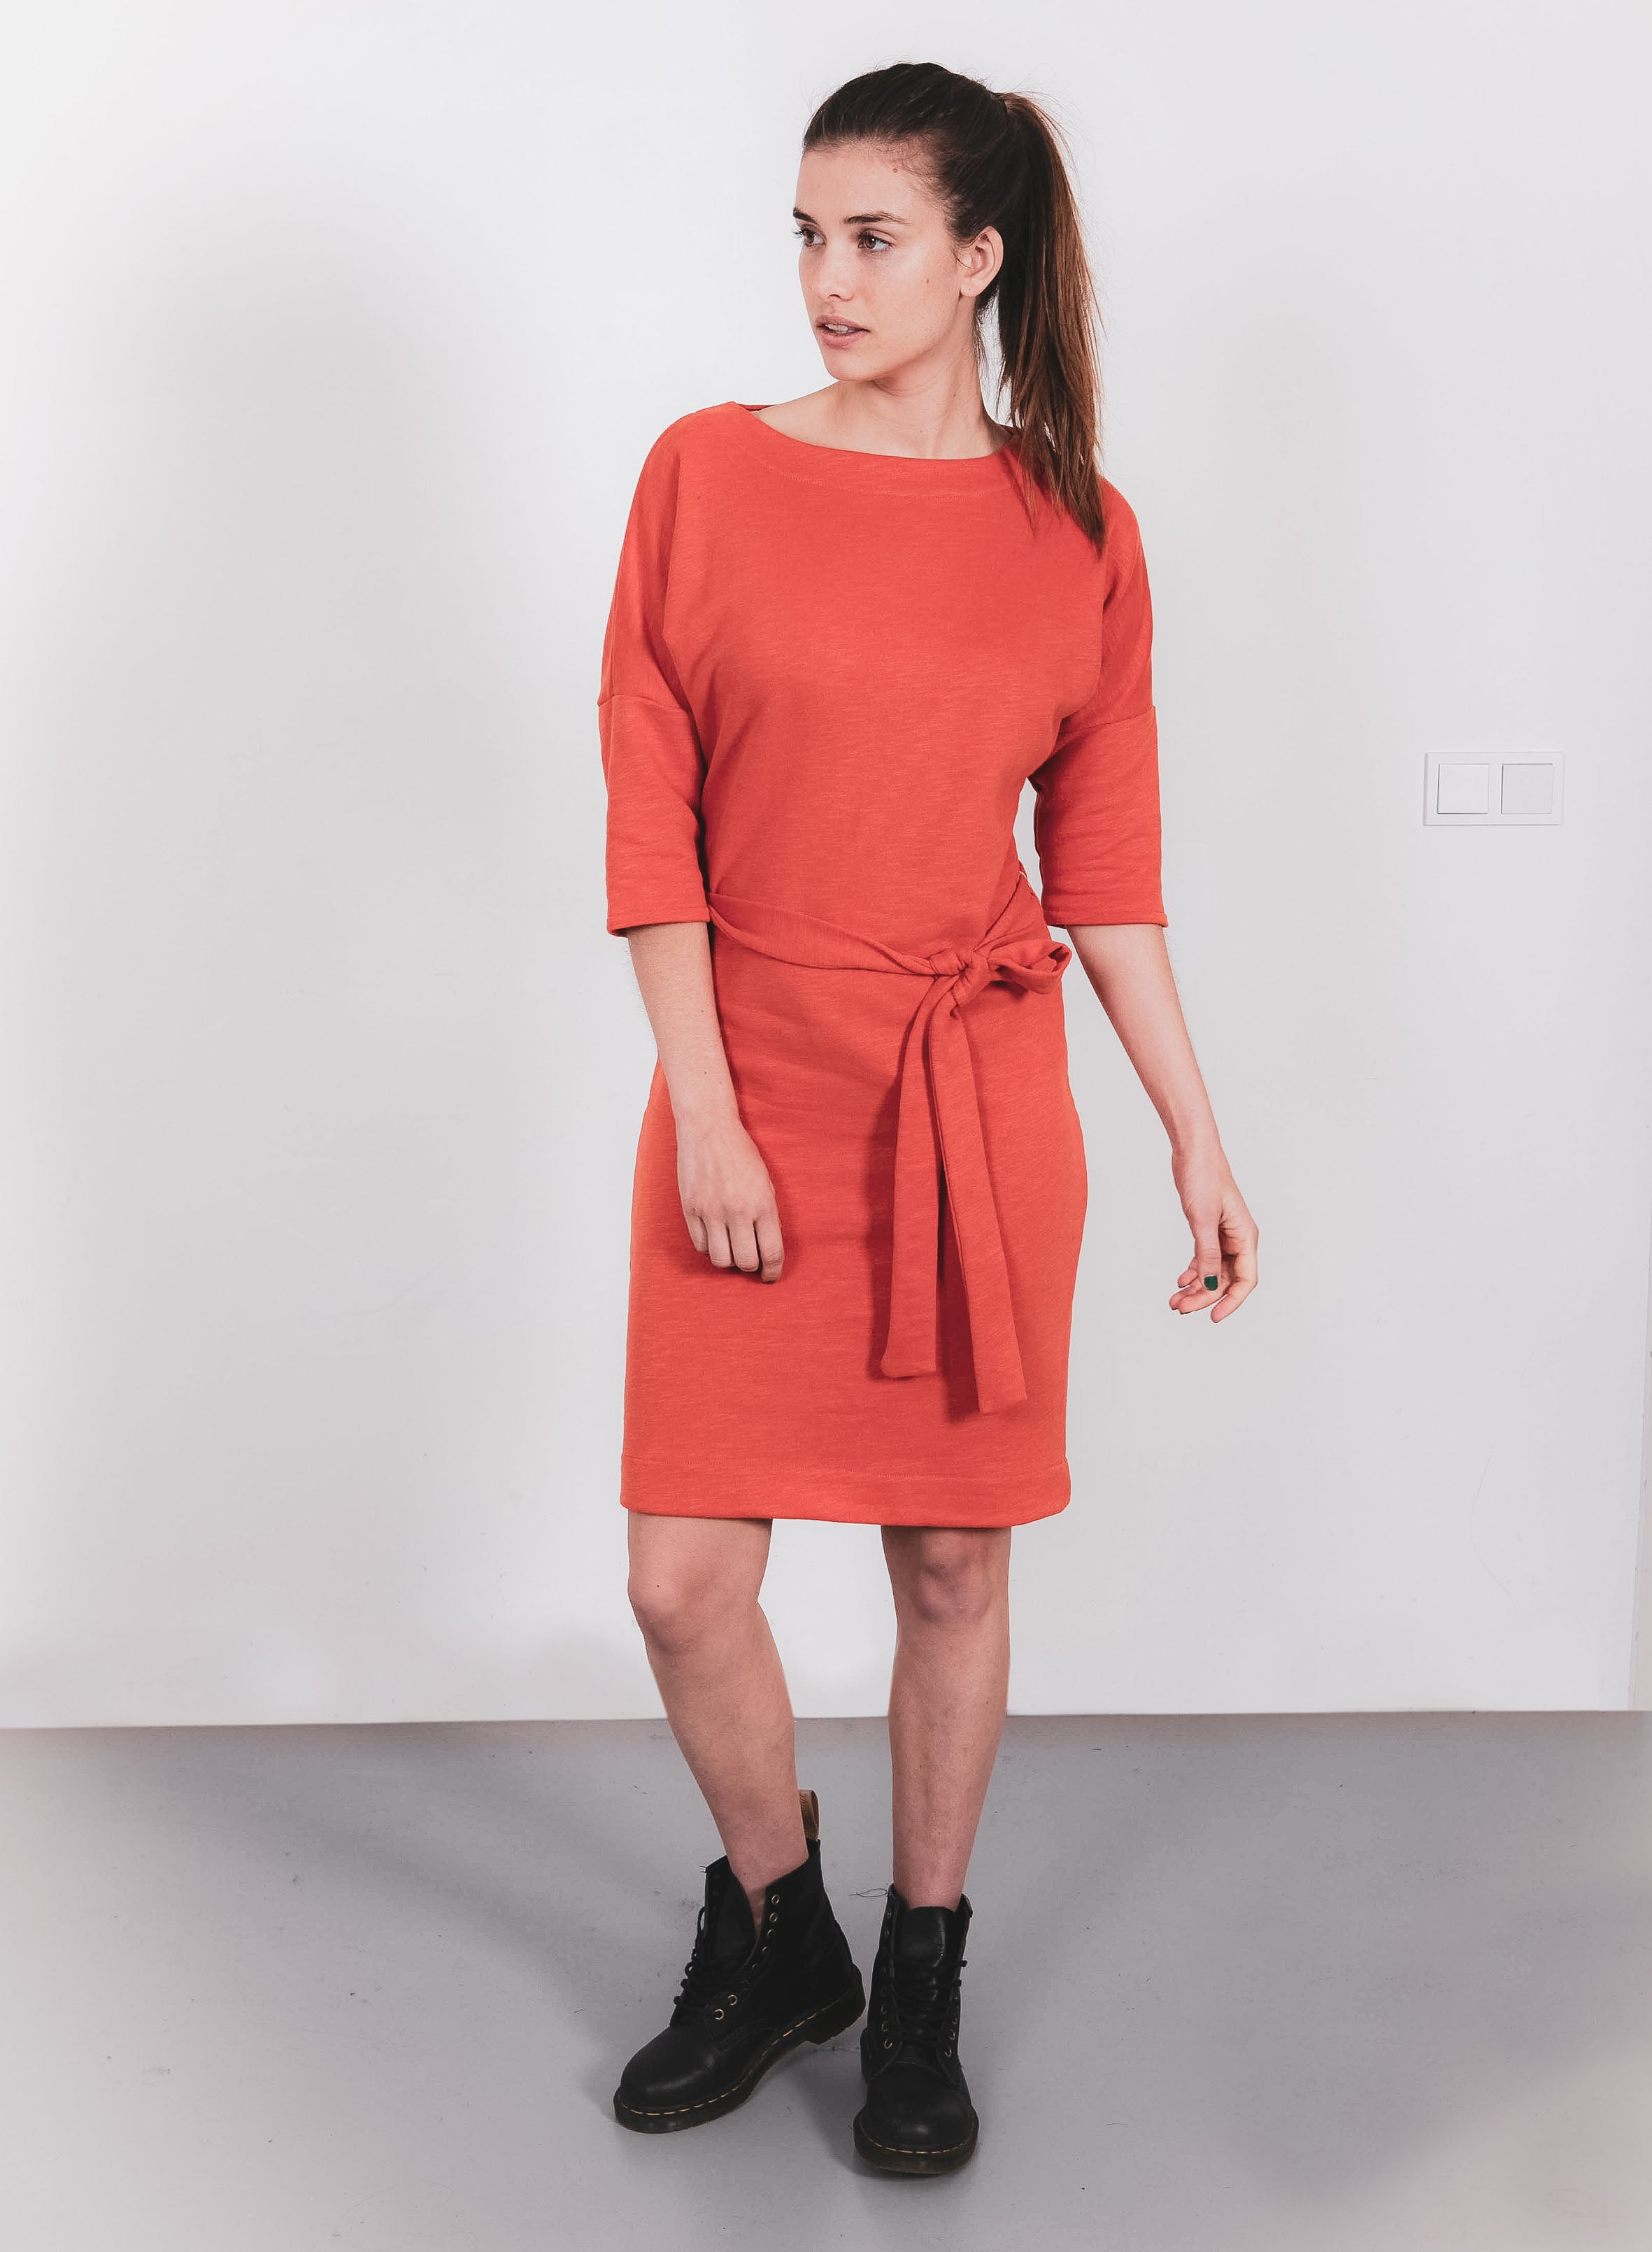 Dress - recycled sweat fabric - orangeº